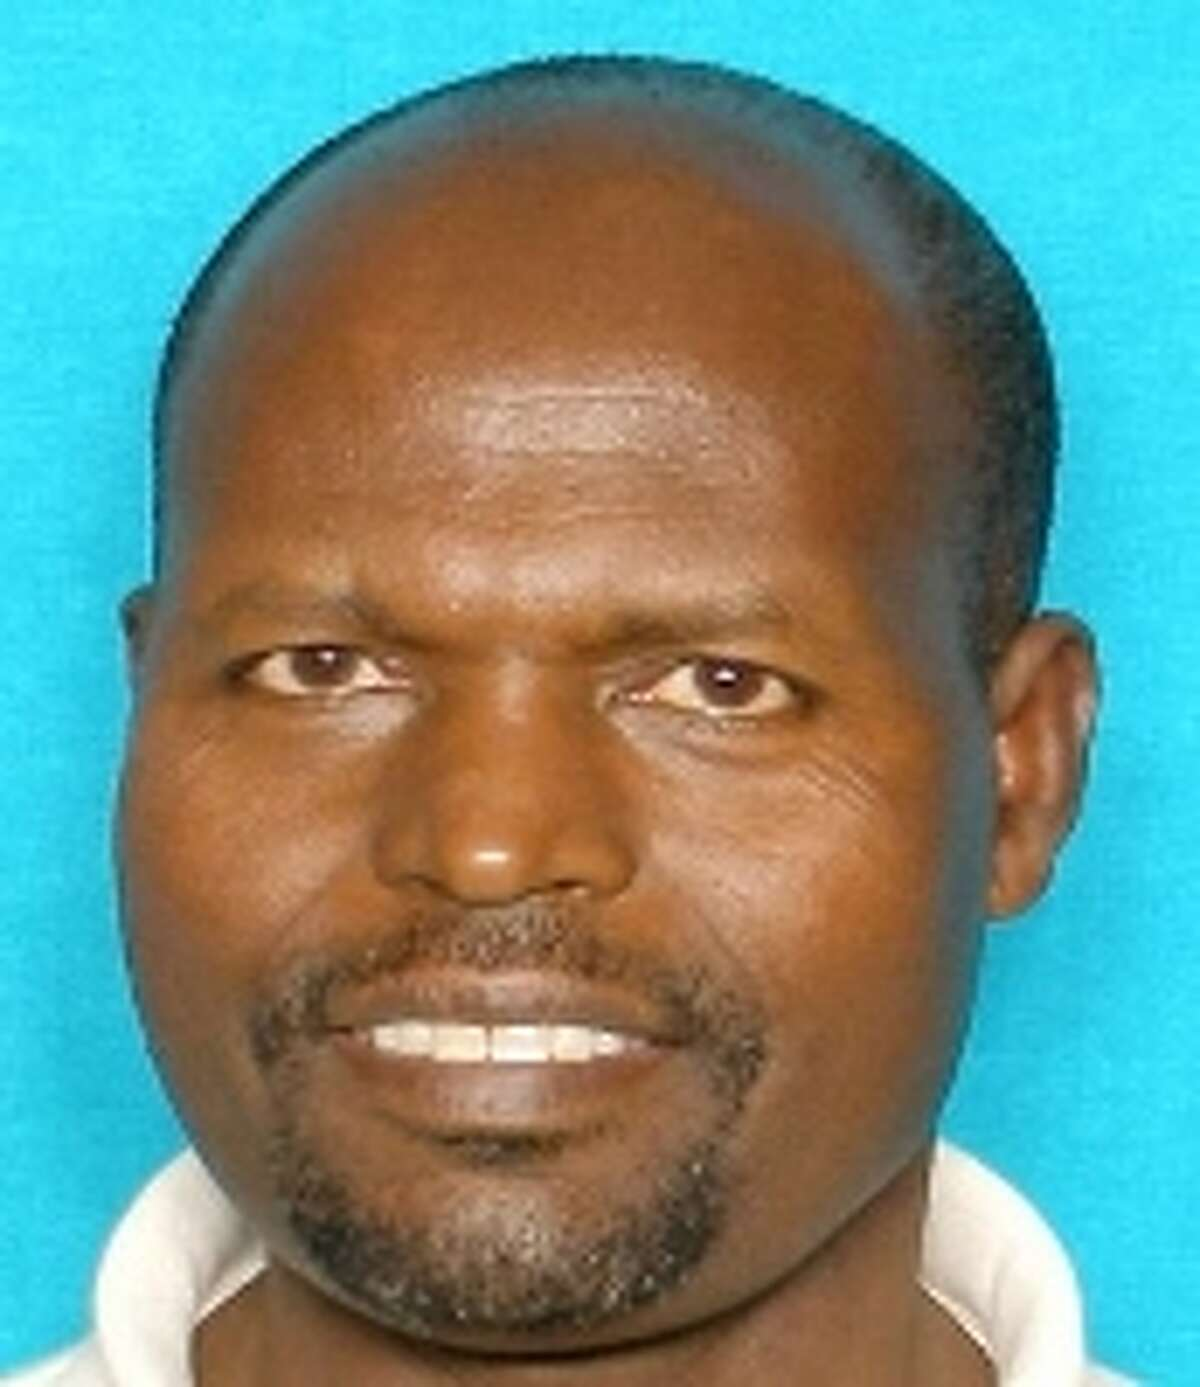 Police released this photograph of Ali Edris, 58, who apparently shot and killed his wife and son before turning the gun on himself Tuesday, Oct. 11, 2016. Courtesy Fort Bend County Sheriff's Office